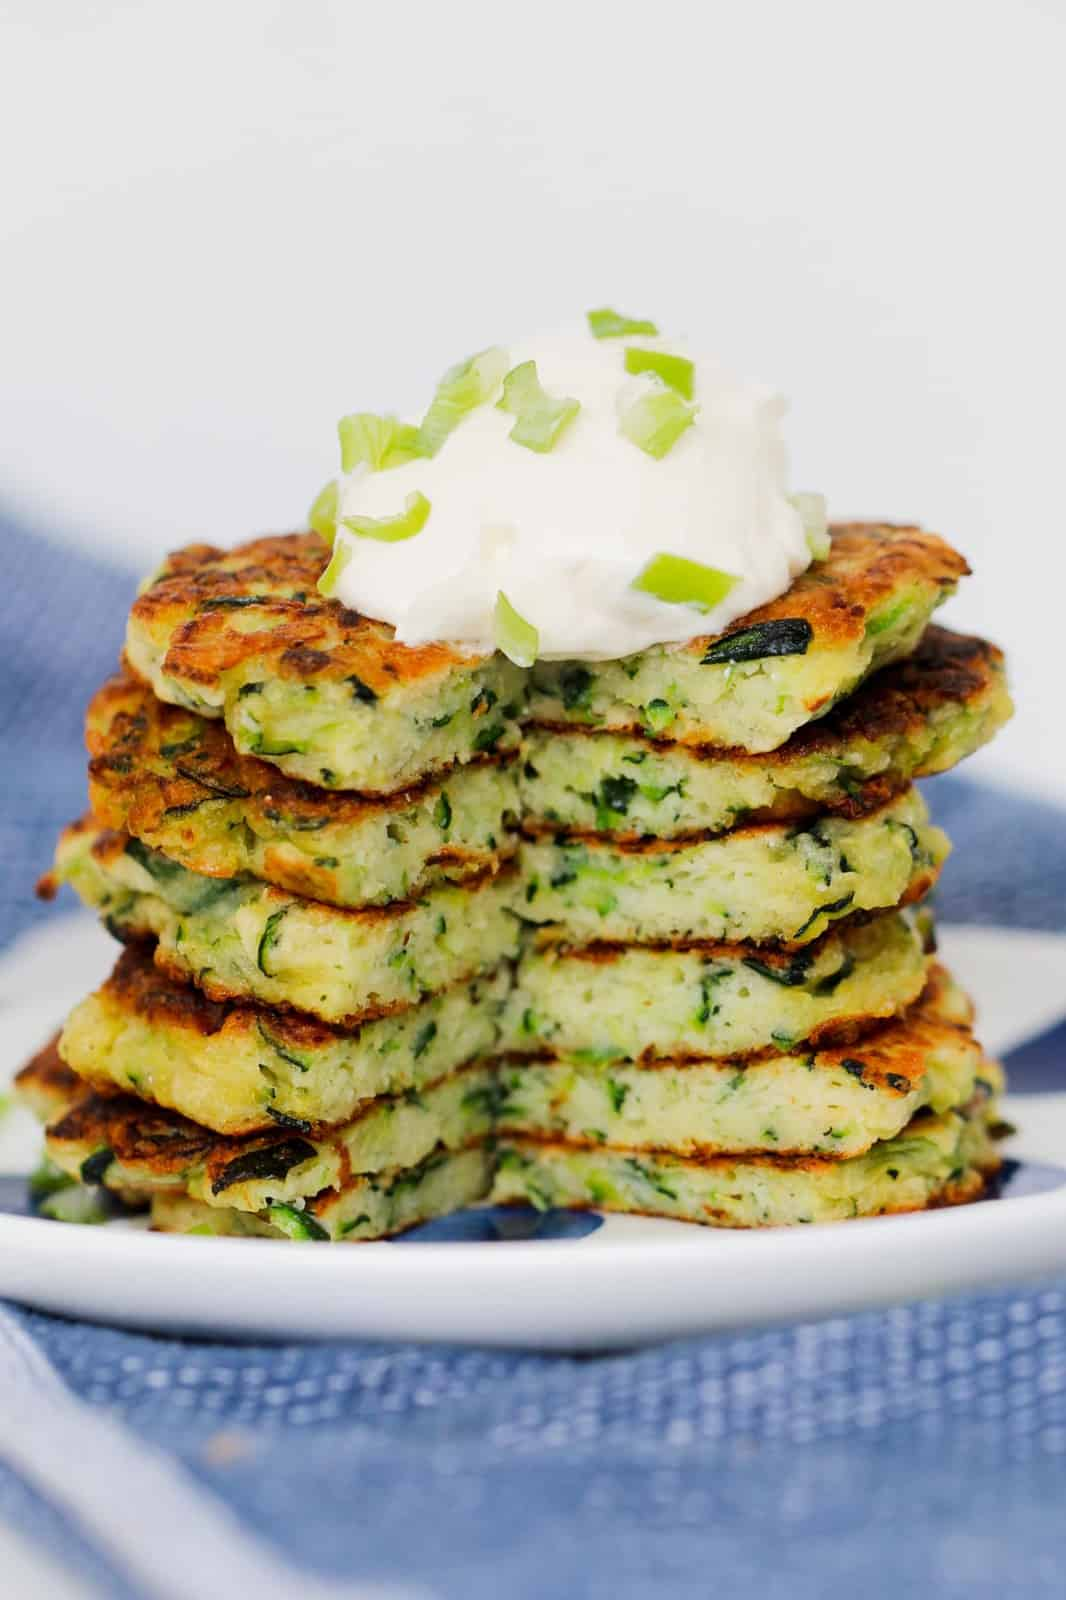 Crispy vegetable cakes with a soft filling cut in half.